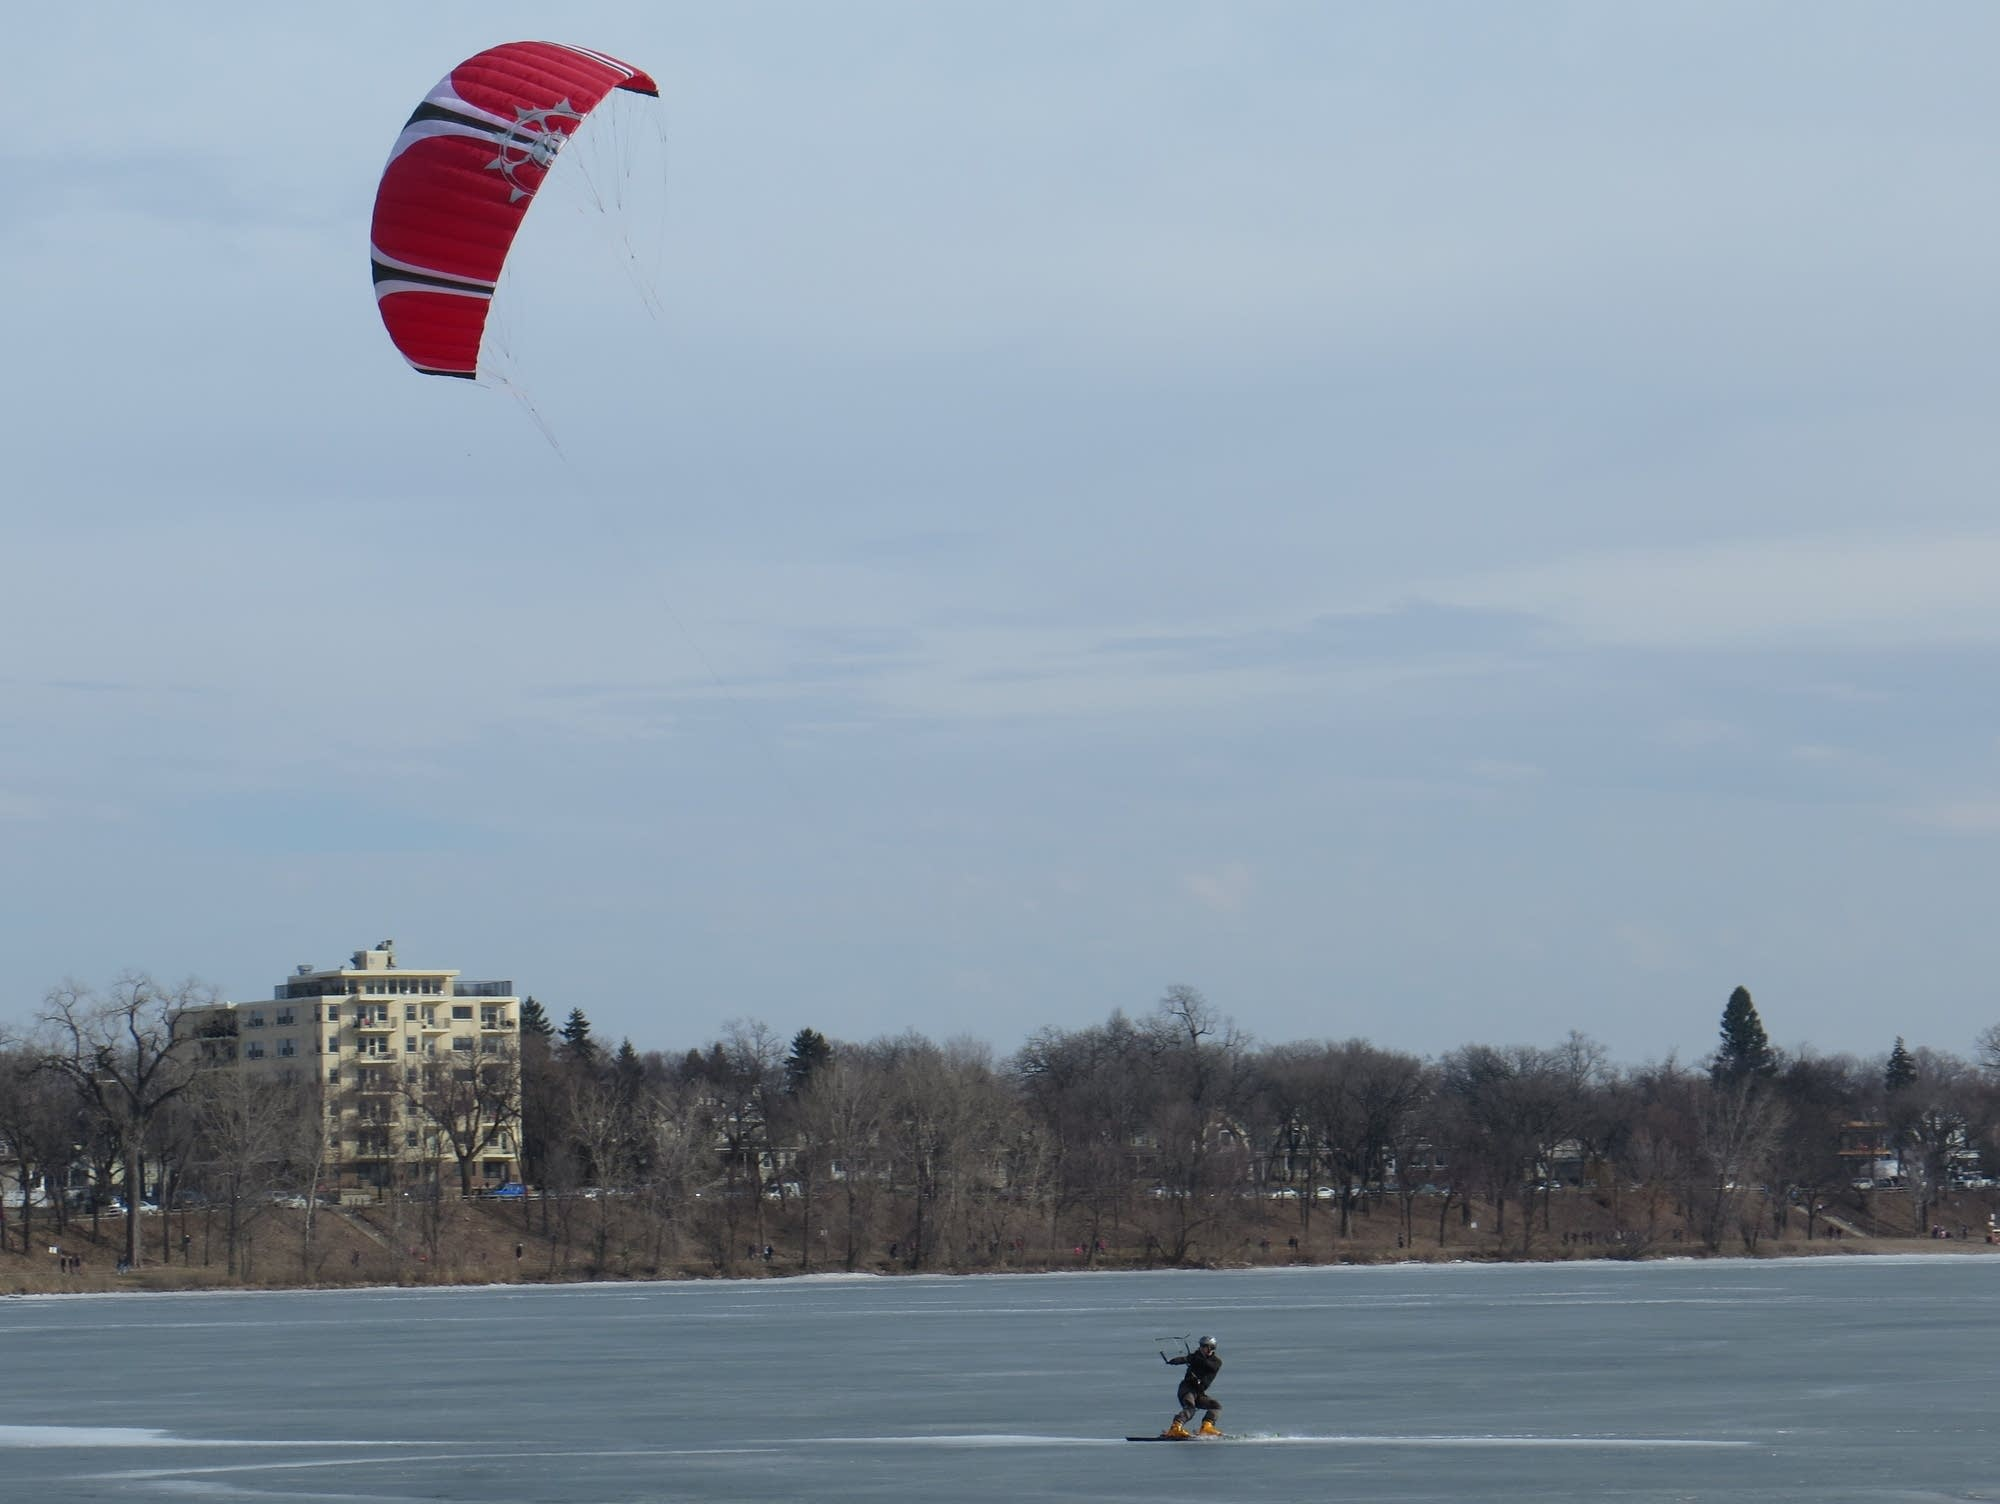 A kite skiier on Lake Calhoun, Feb. 19, 2017.